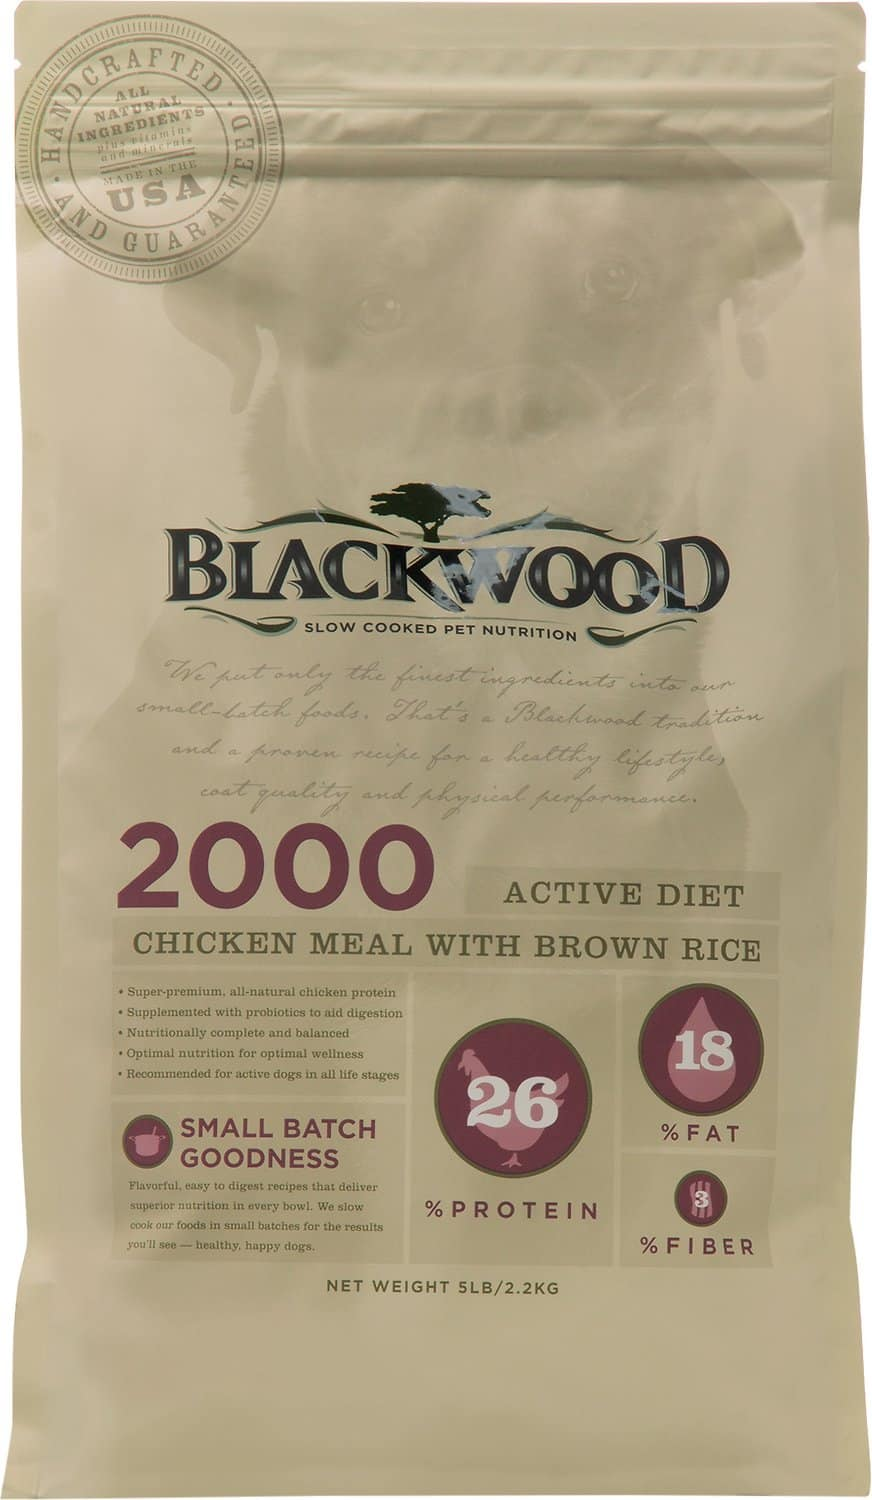 Blackwood Dog Food Review [year]: Best Slow Cooked Pet Nutrition? 15